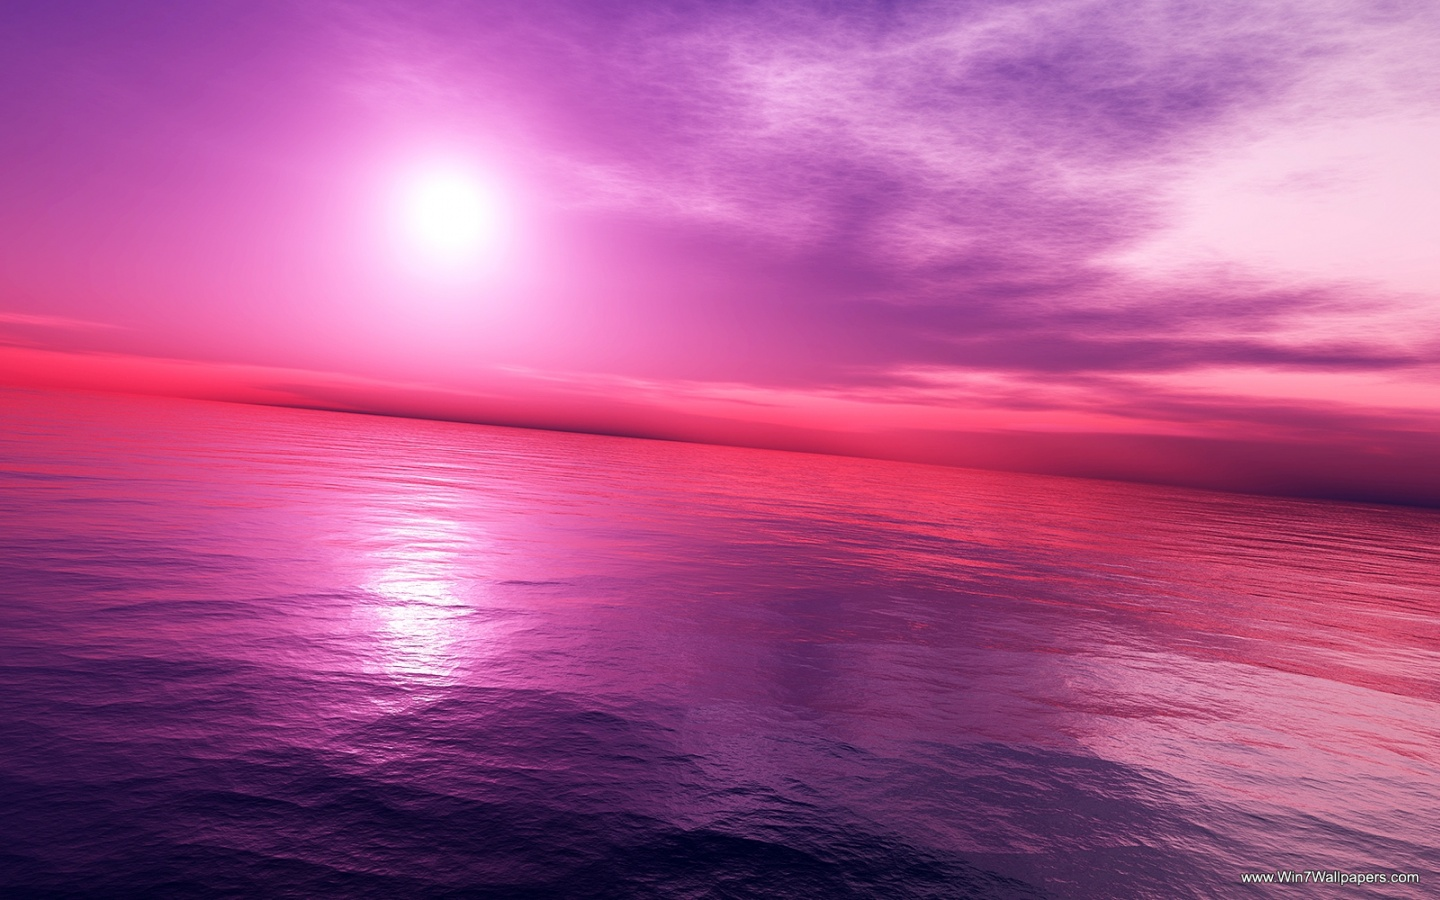 Pink Sunset Wallpaper 30023 1920x1200 px